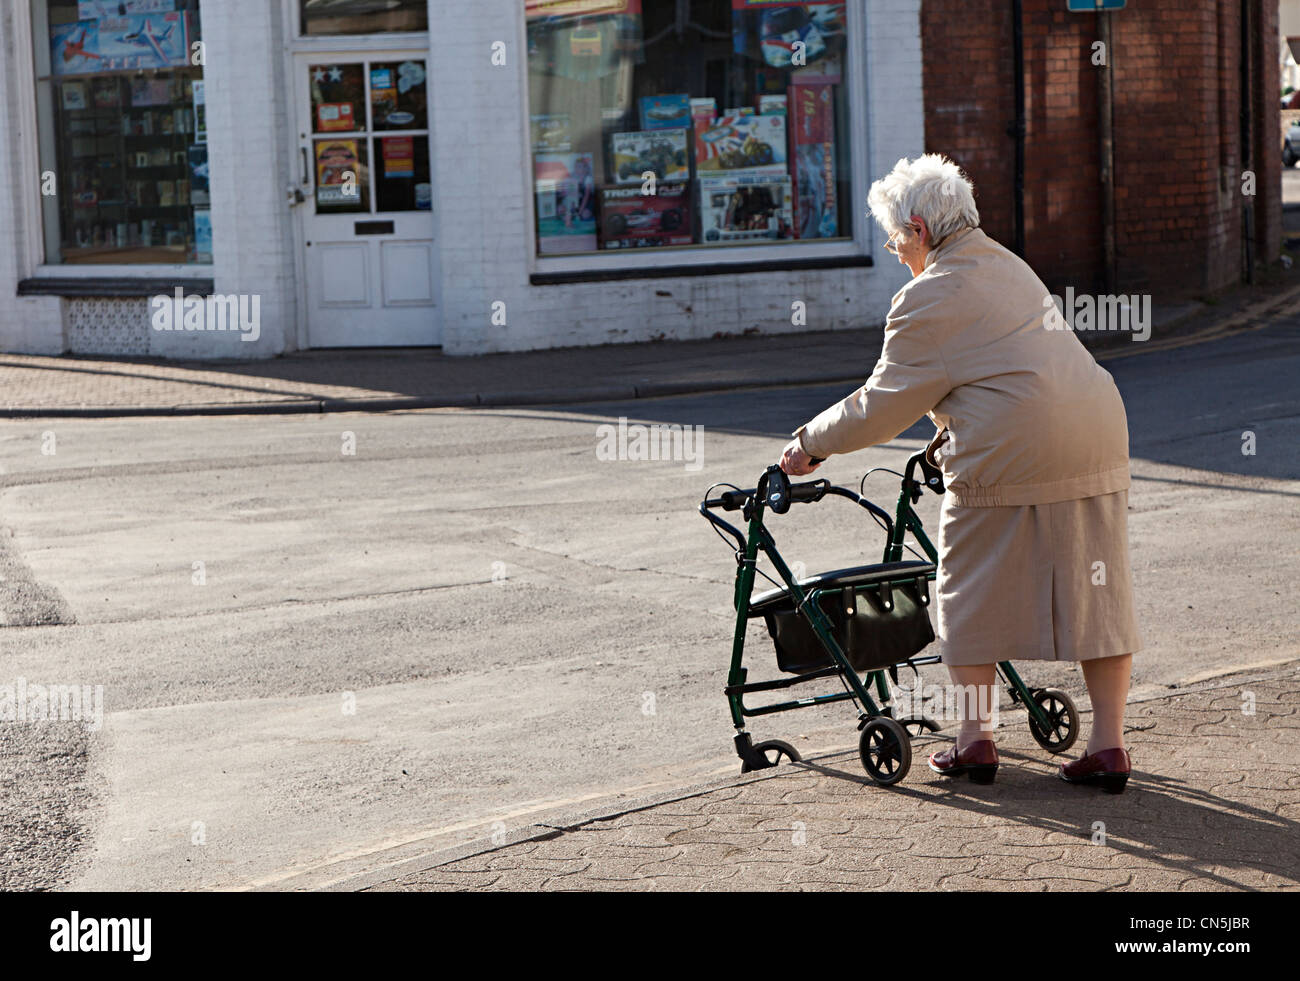 old lady chair cheap covers for weddings to buy woman pushing shopping down kerb in street